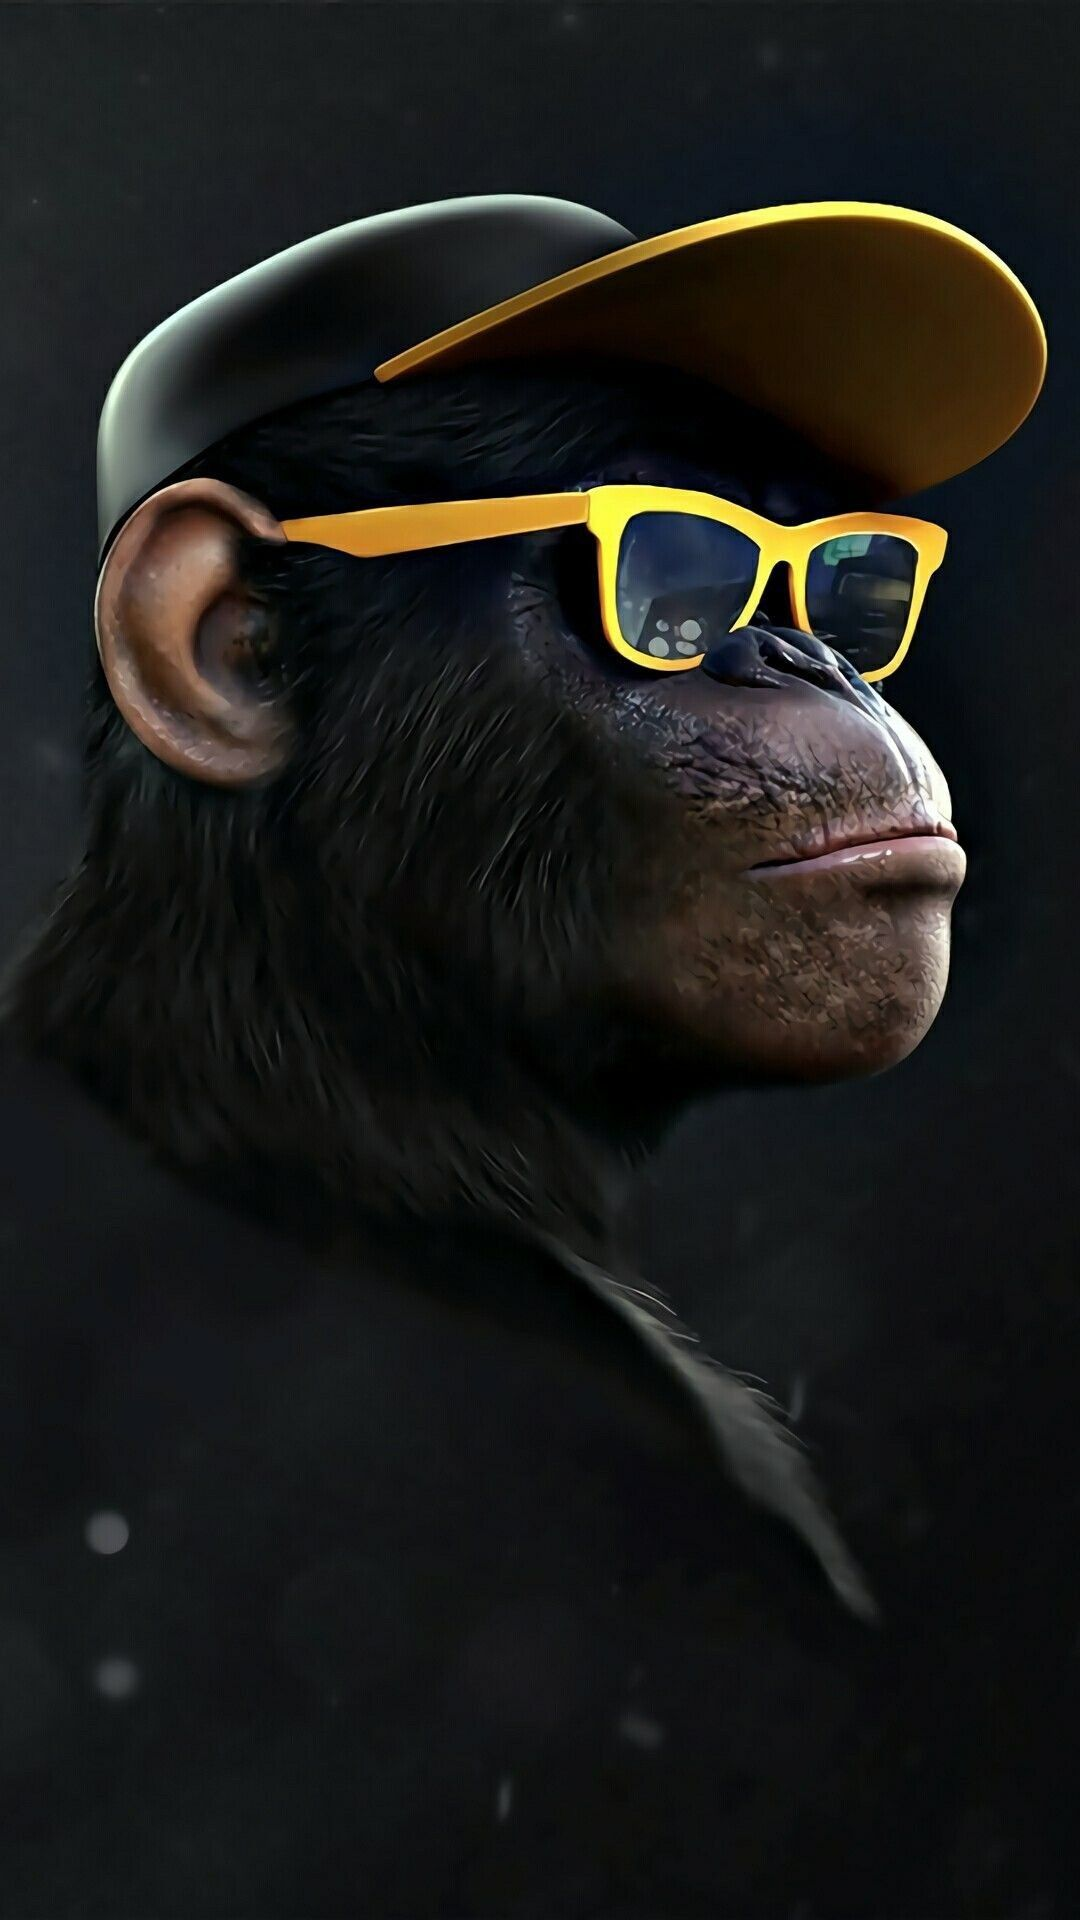 Best Funny Backgrounds  Res: 1080x1920, Funny Monkeys, Iphone Wallpapers, Phone Backgrounds, Work Today, Hanuman,  Primates, Art Illustrations, Swag, Cousins 3